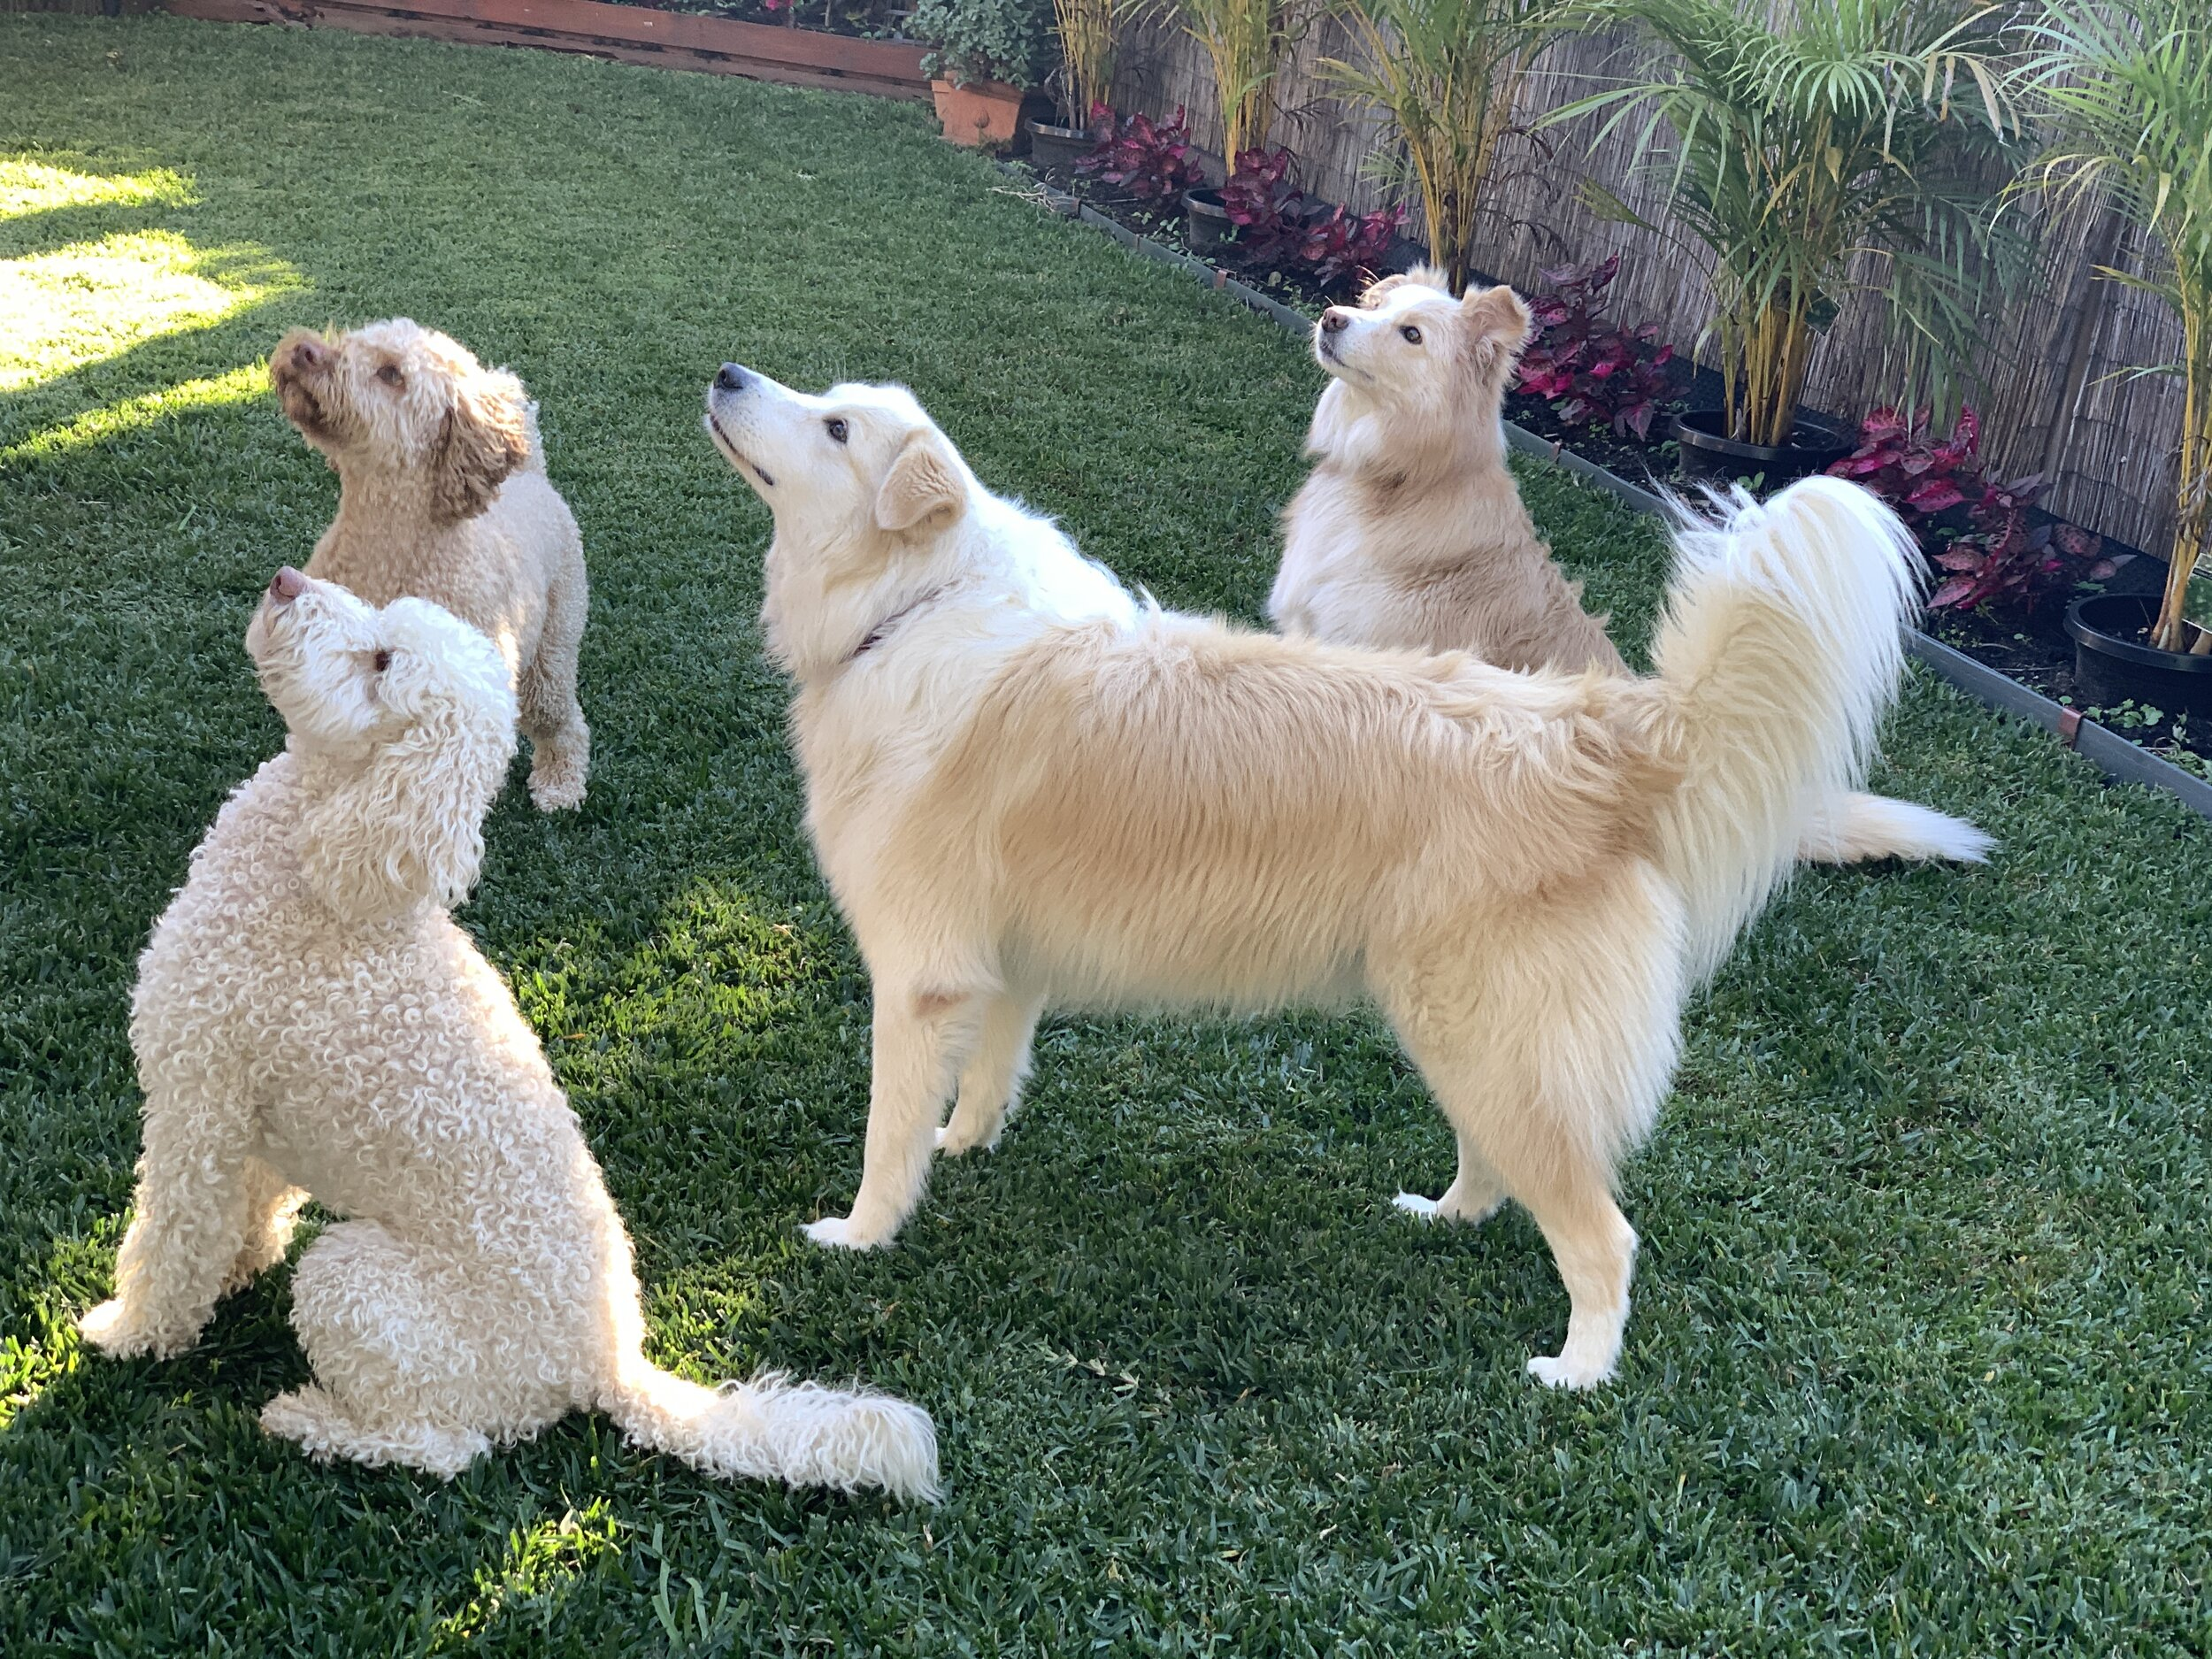 Bella, Leo, Lacie & Kaylee in the Grassy Garden looking at birds!